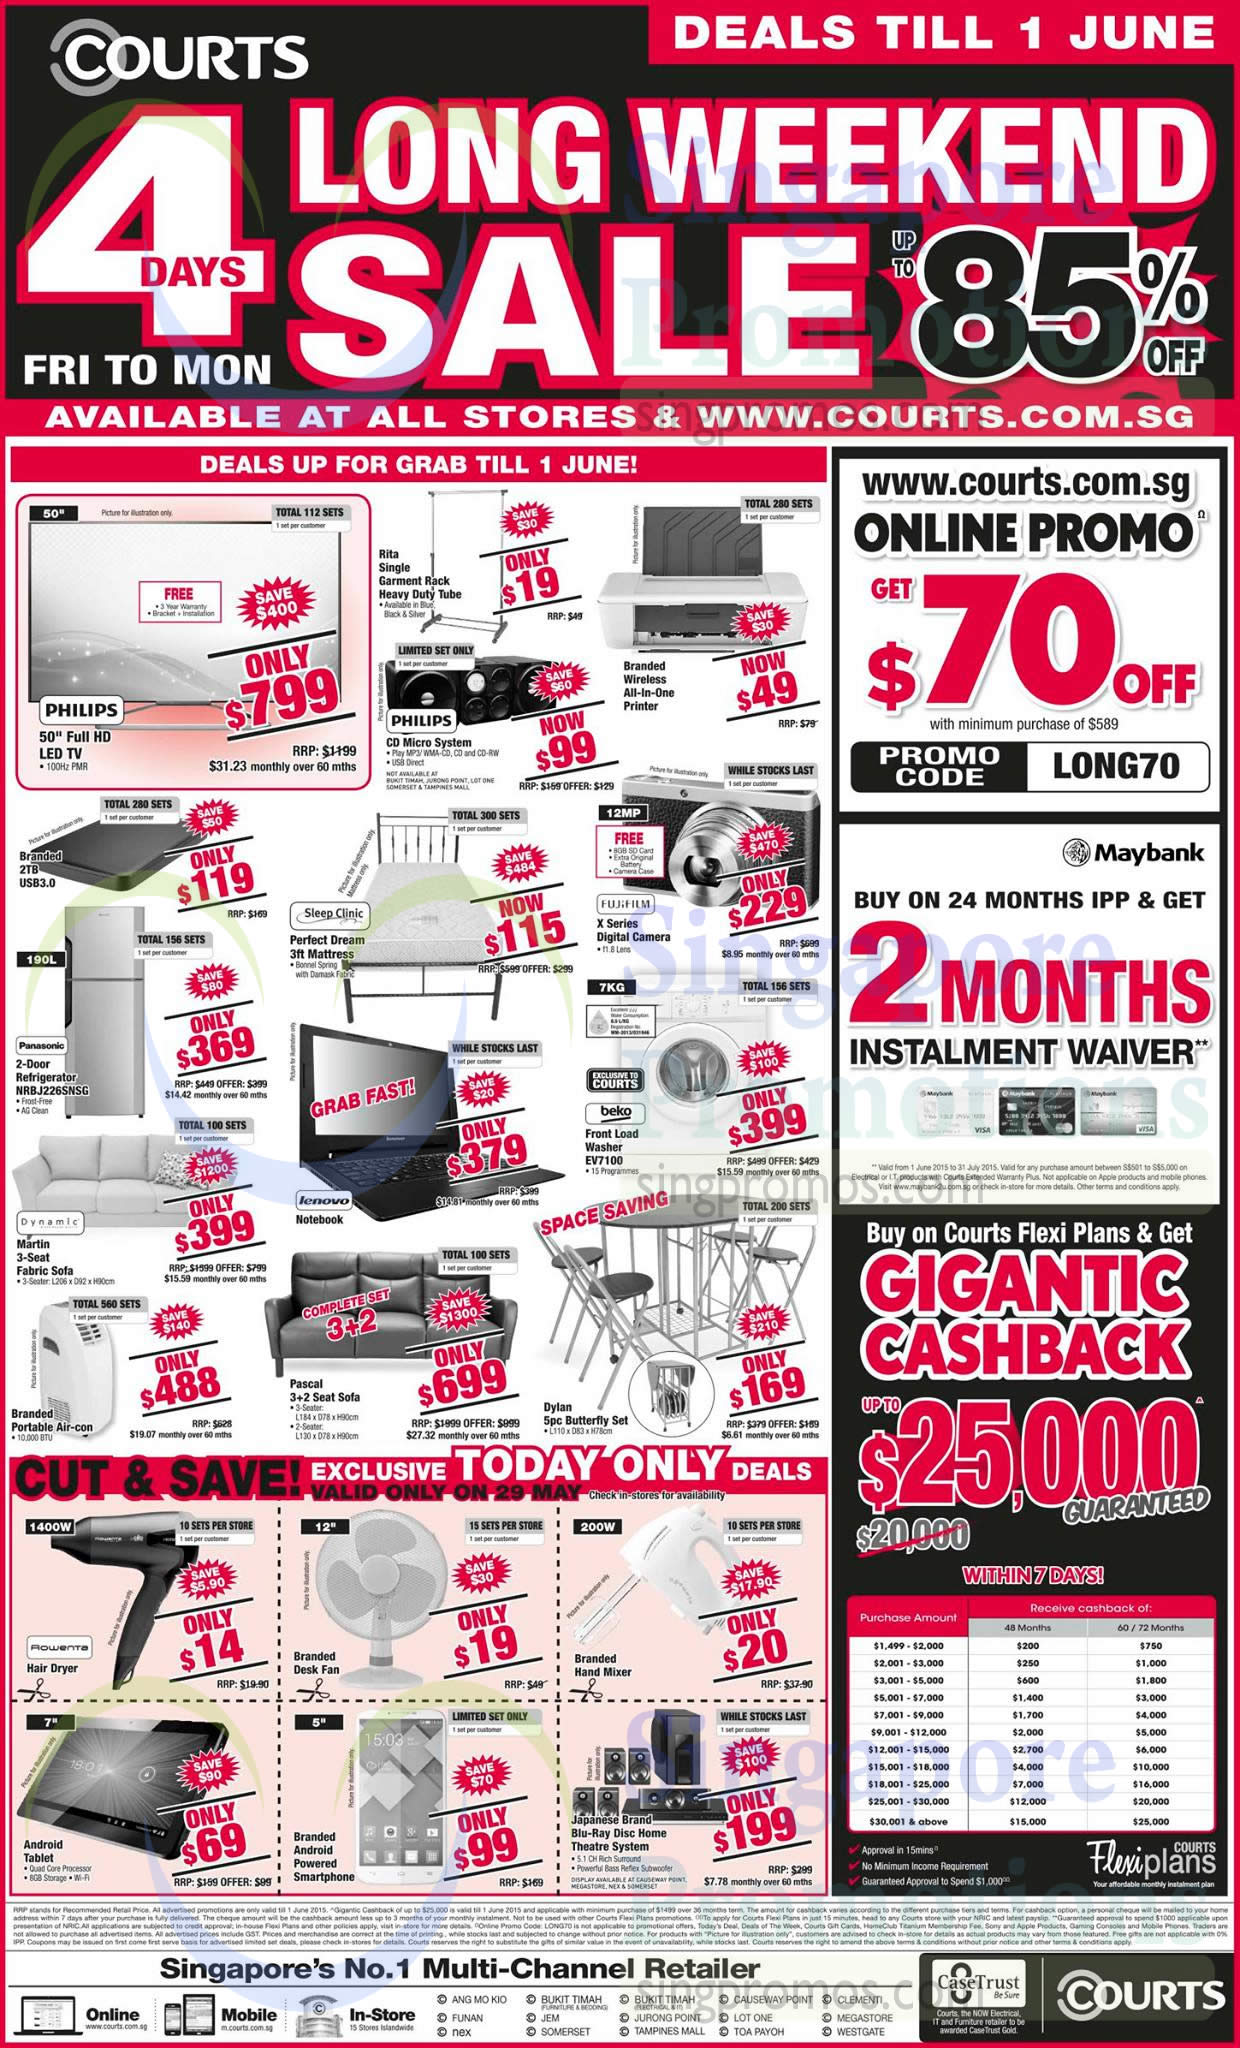 Featured image for Courts Long Weekend Sale 31 May - 1 Jun 2015